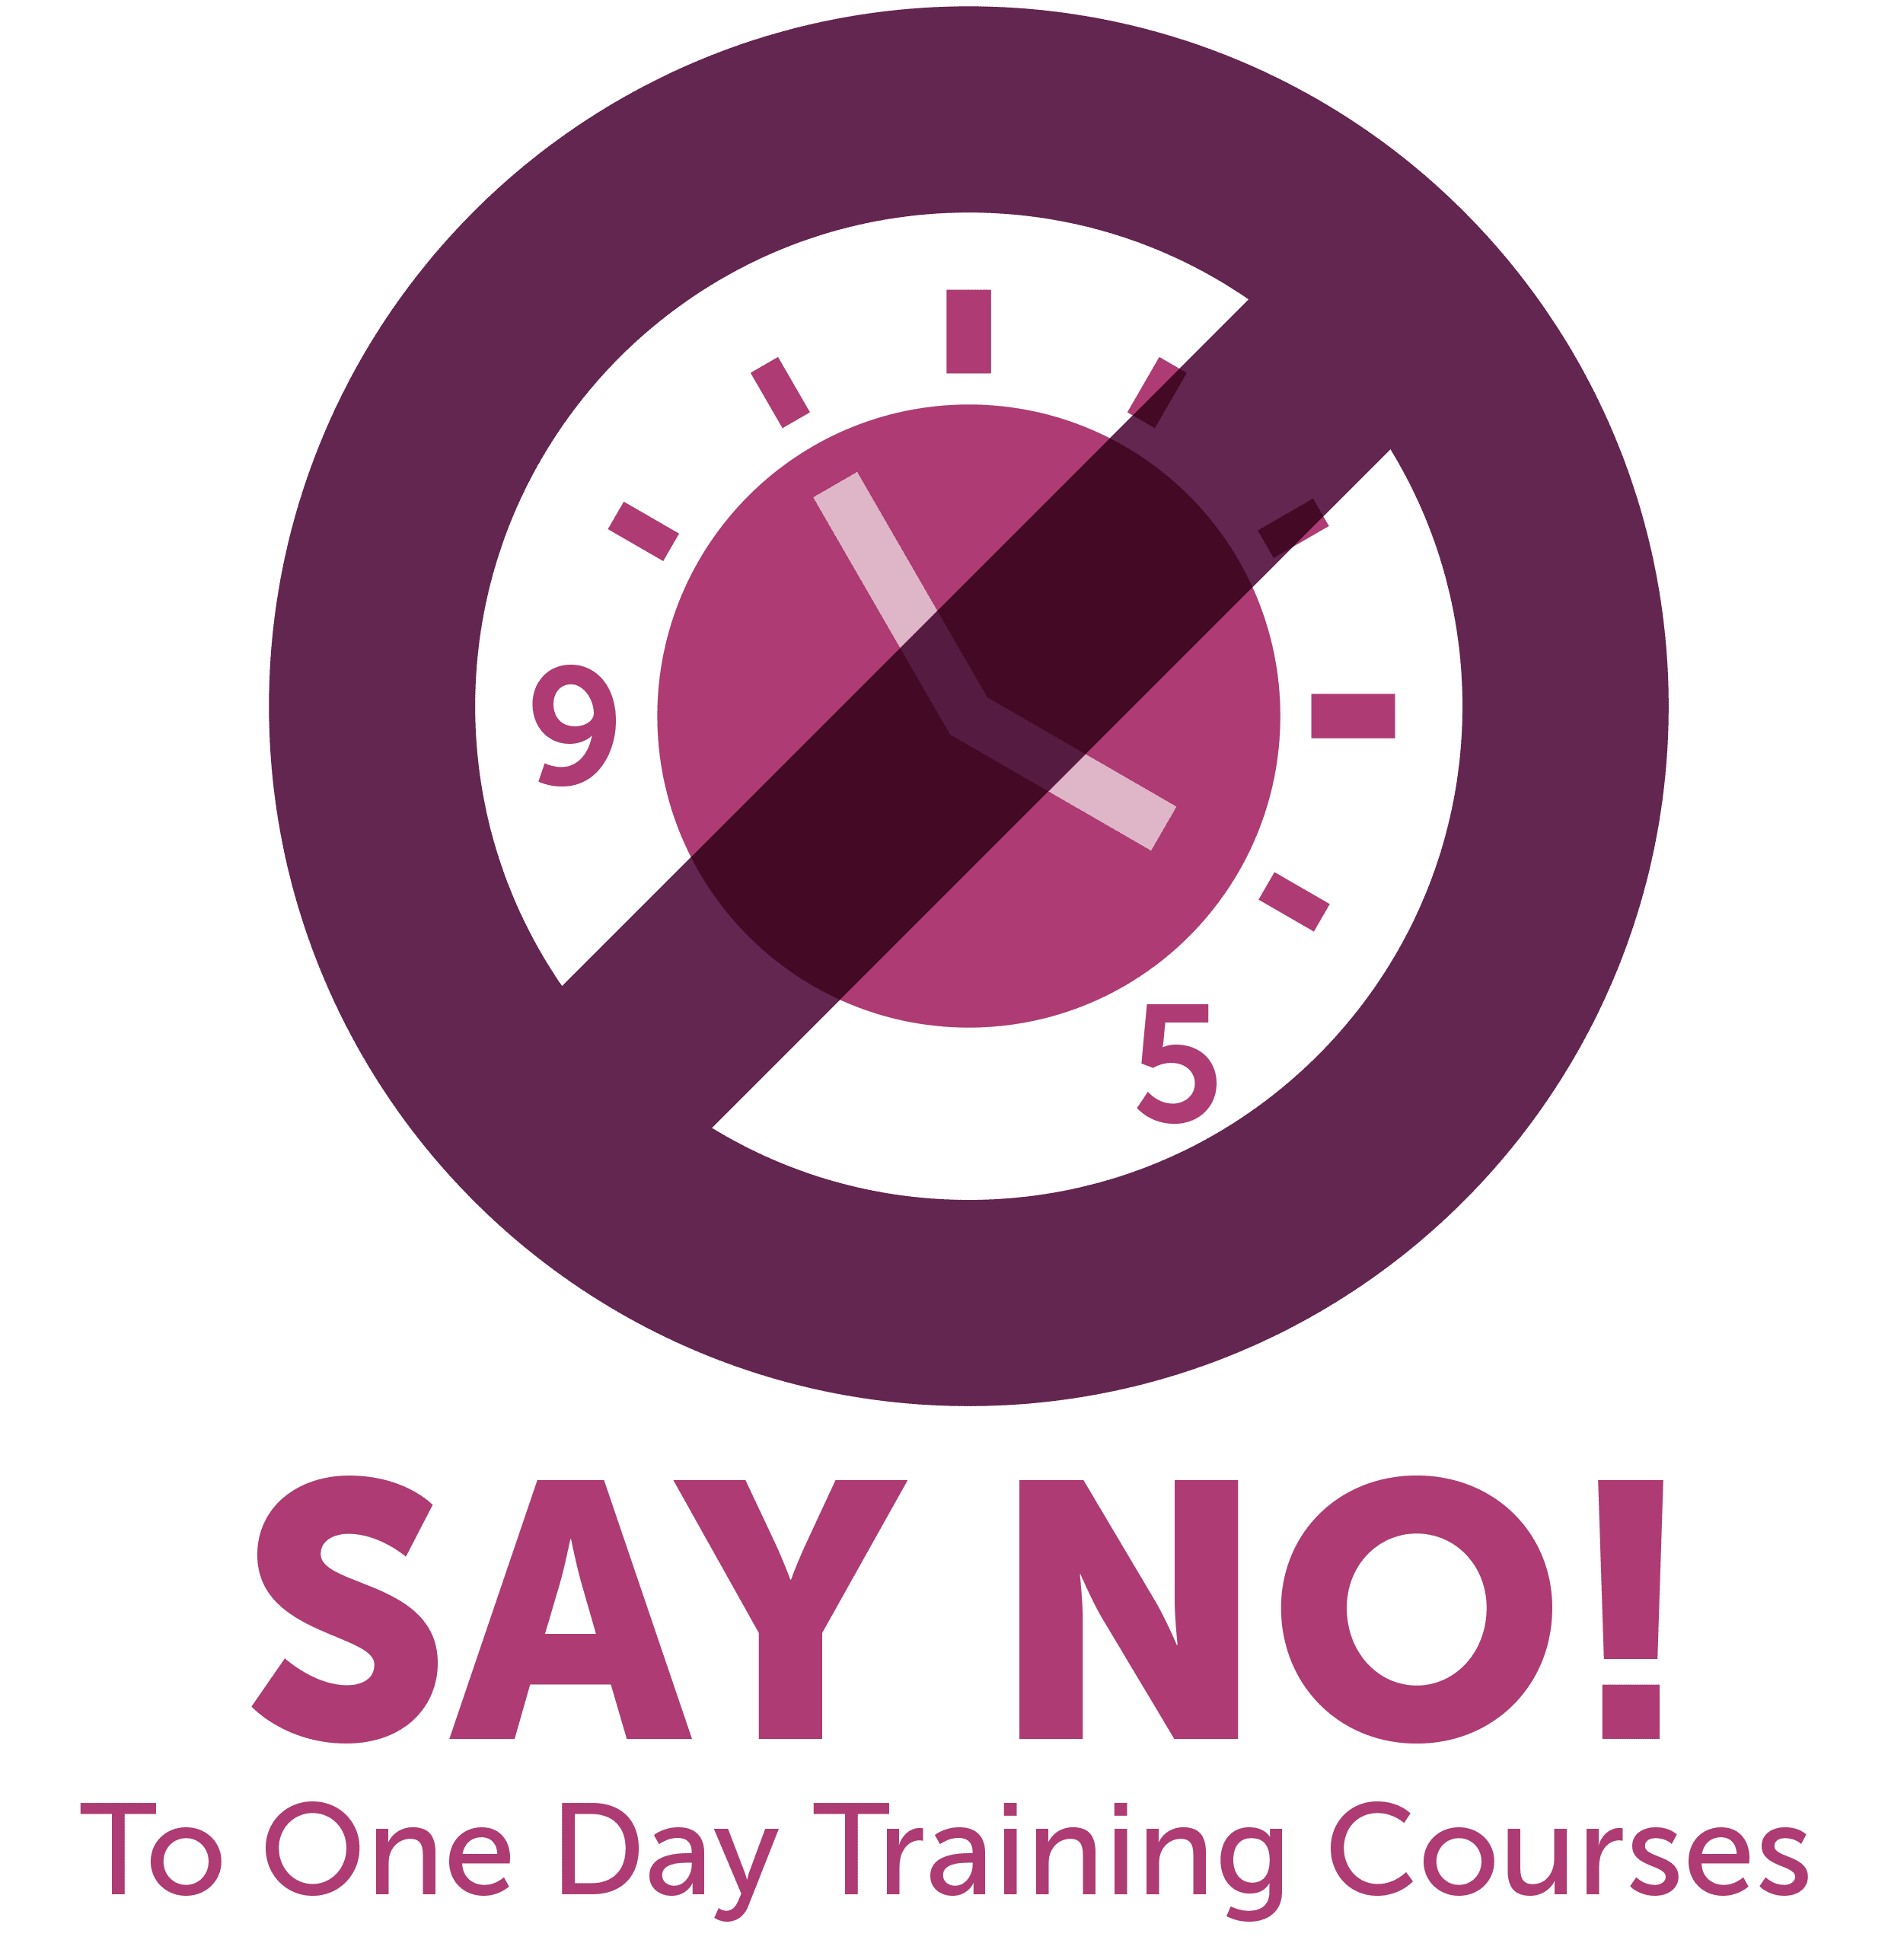 Cartoon clock with cross over it - Say No to one day training courses